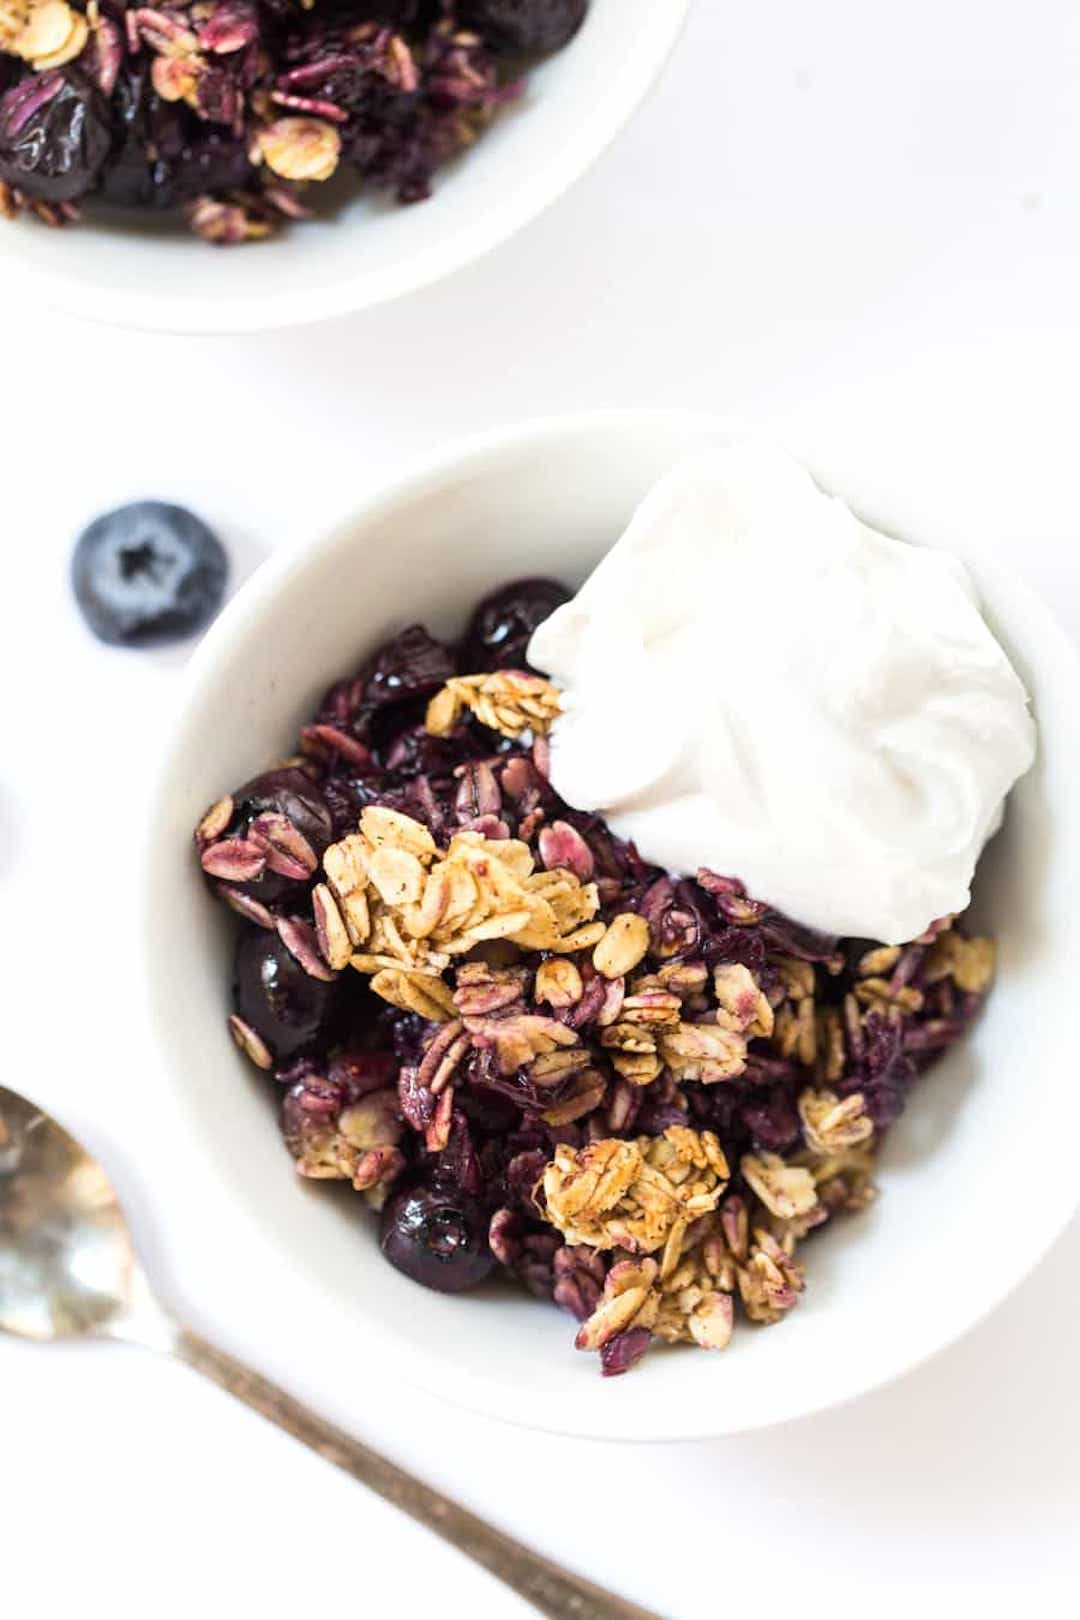 12 Super Easy Plant Based Desserts - Banana Blueberry Crumble